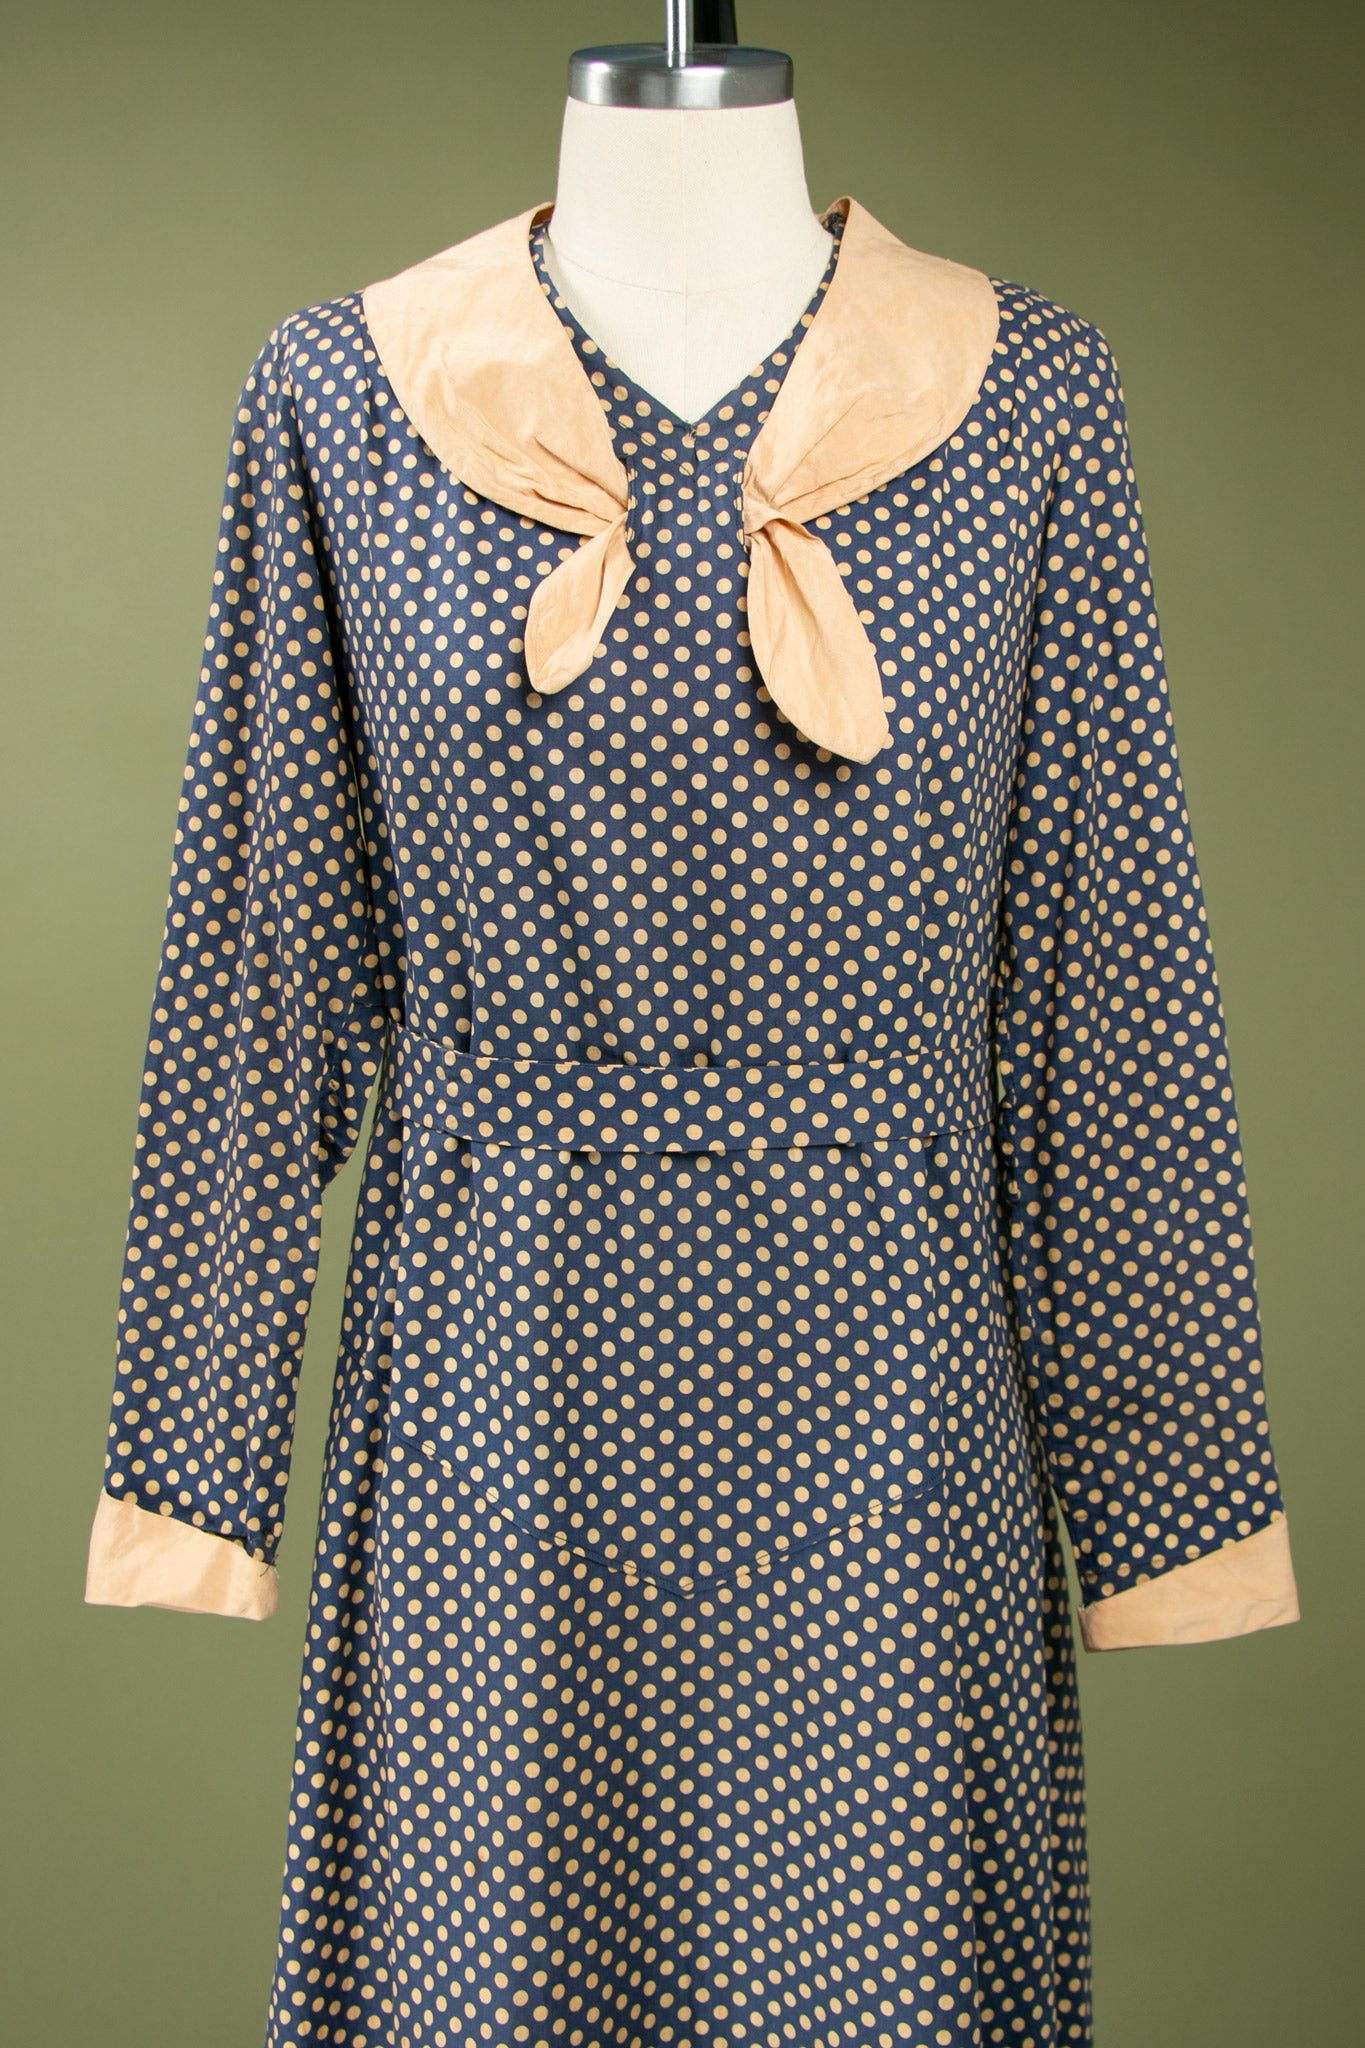 Vintage 1920's - 1930's Polka Dot Cotton Dress with Long Sleeves